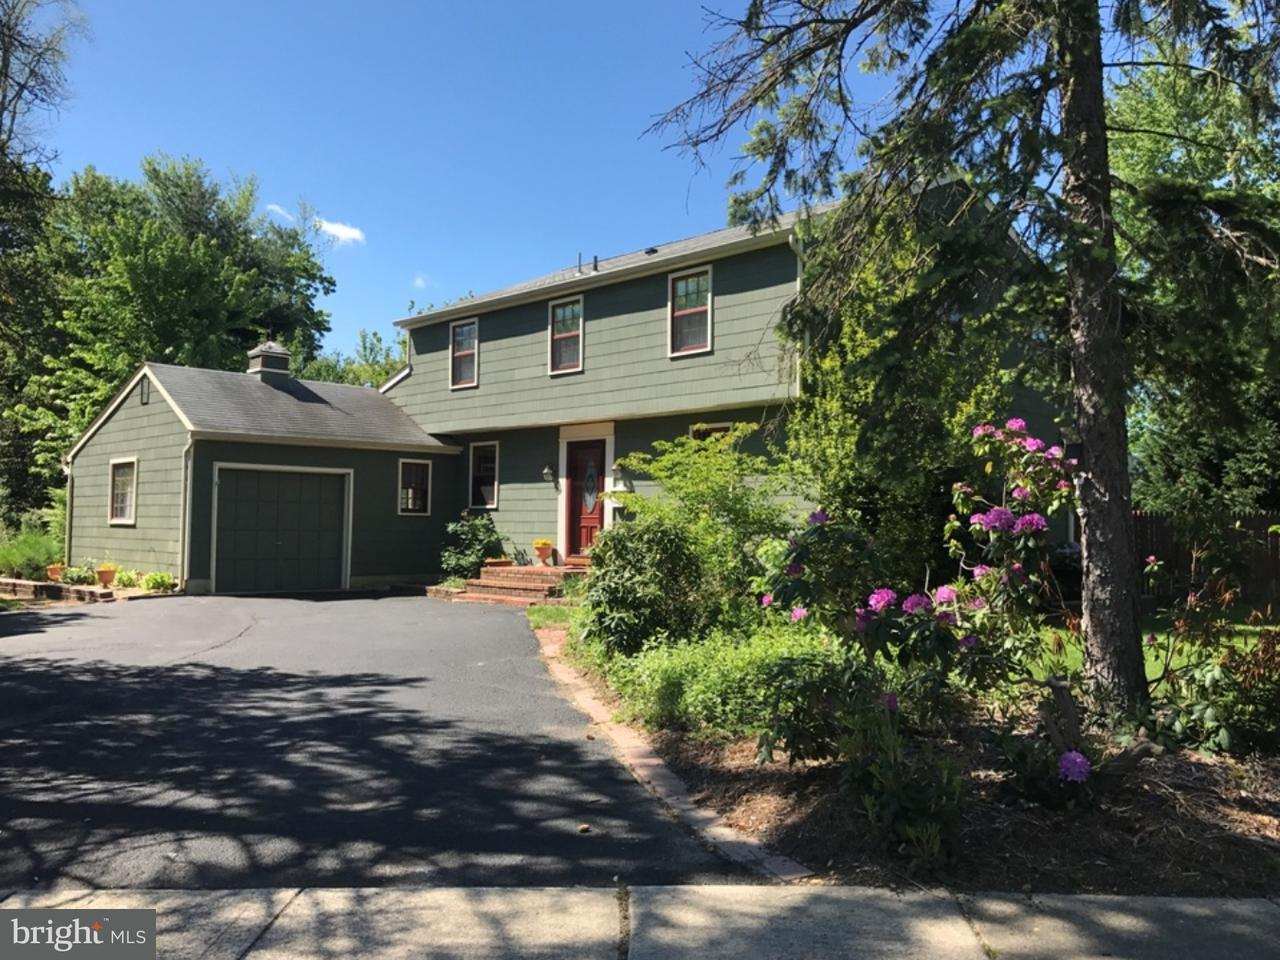 Single Family Home for Rent at 10 BLATHERWICK Drive Berlin, New Jersey 08009 United States